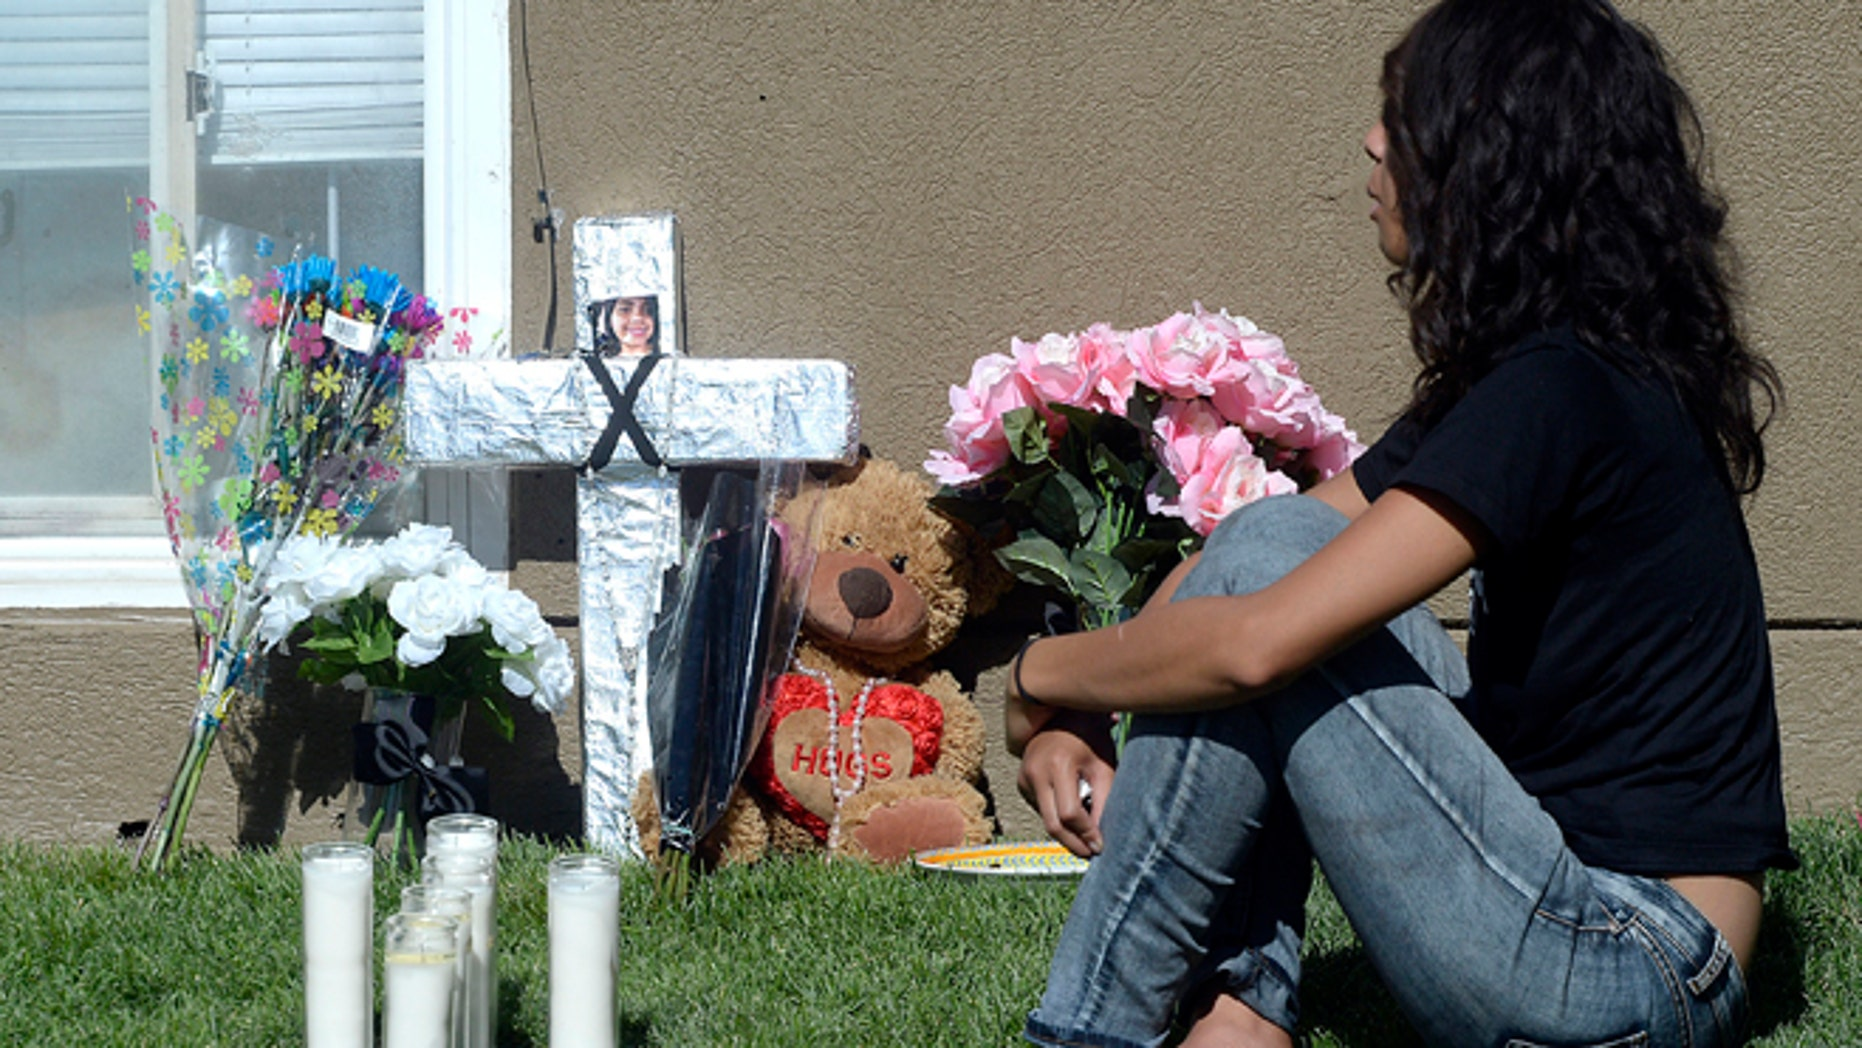 Friends and family mourn at a memorial for sixteen-year-old Jose Izazaga and his 15-year-old sister Abril Izazaga, Thursday, July 7, 2016 in Midvale, Utah. As police search for a man who police say gunned down a teenage brother and sister during an argument over a T-shirt late Wednesday at a Salt Lake City suburb apartment complex, family members are mourning the senseless killing of siblings who shared a tight bond. (Al Hartmann/The Salt Lake Tribune via AP)